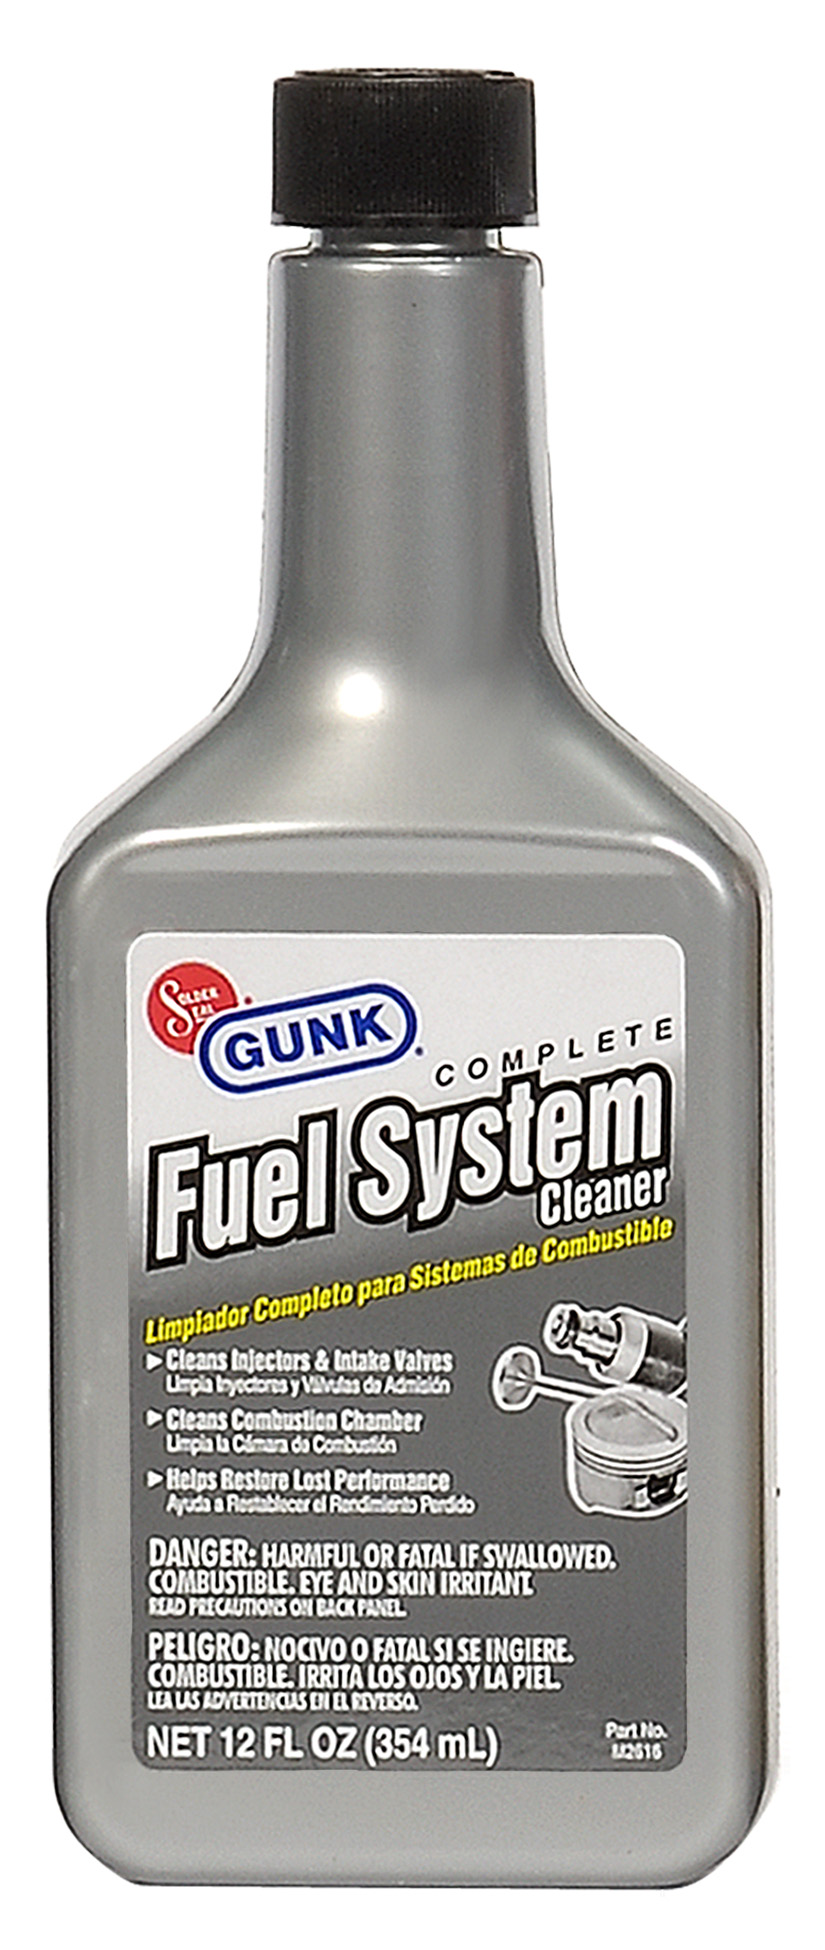 M2616 Solder Seal Fuel System Cleaner Use To Clean Fuel System/